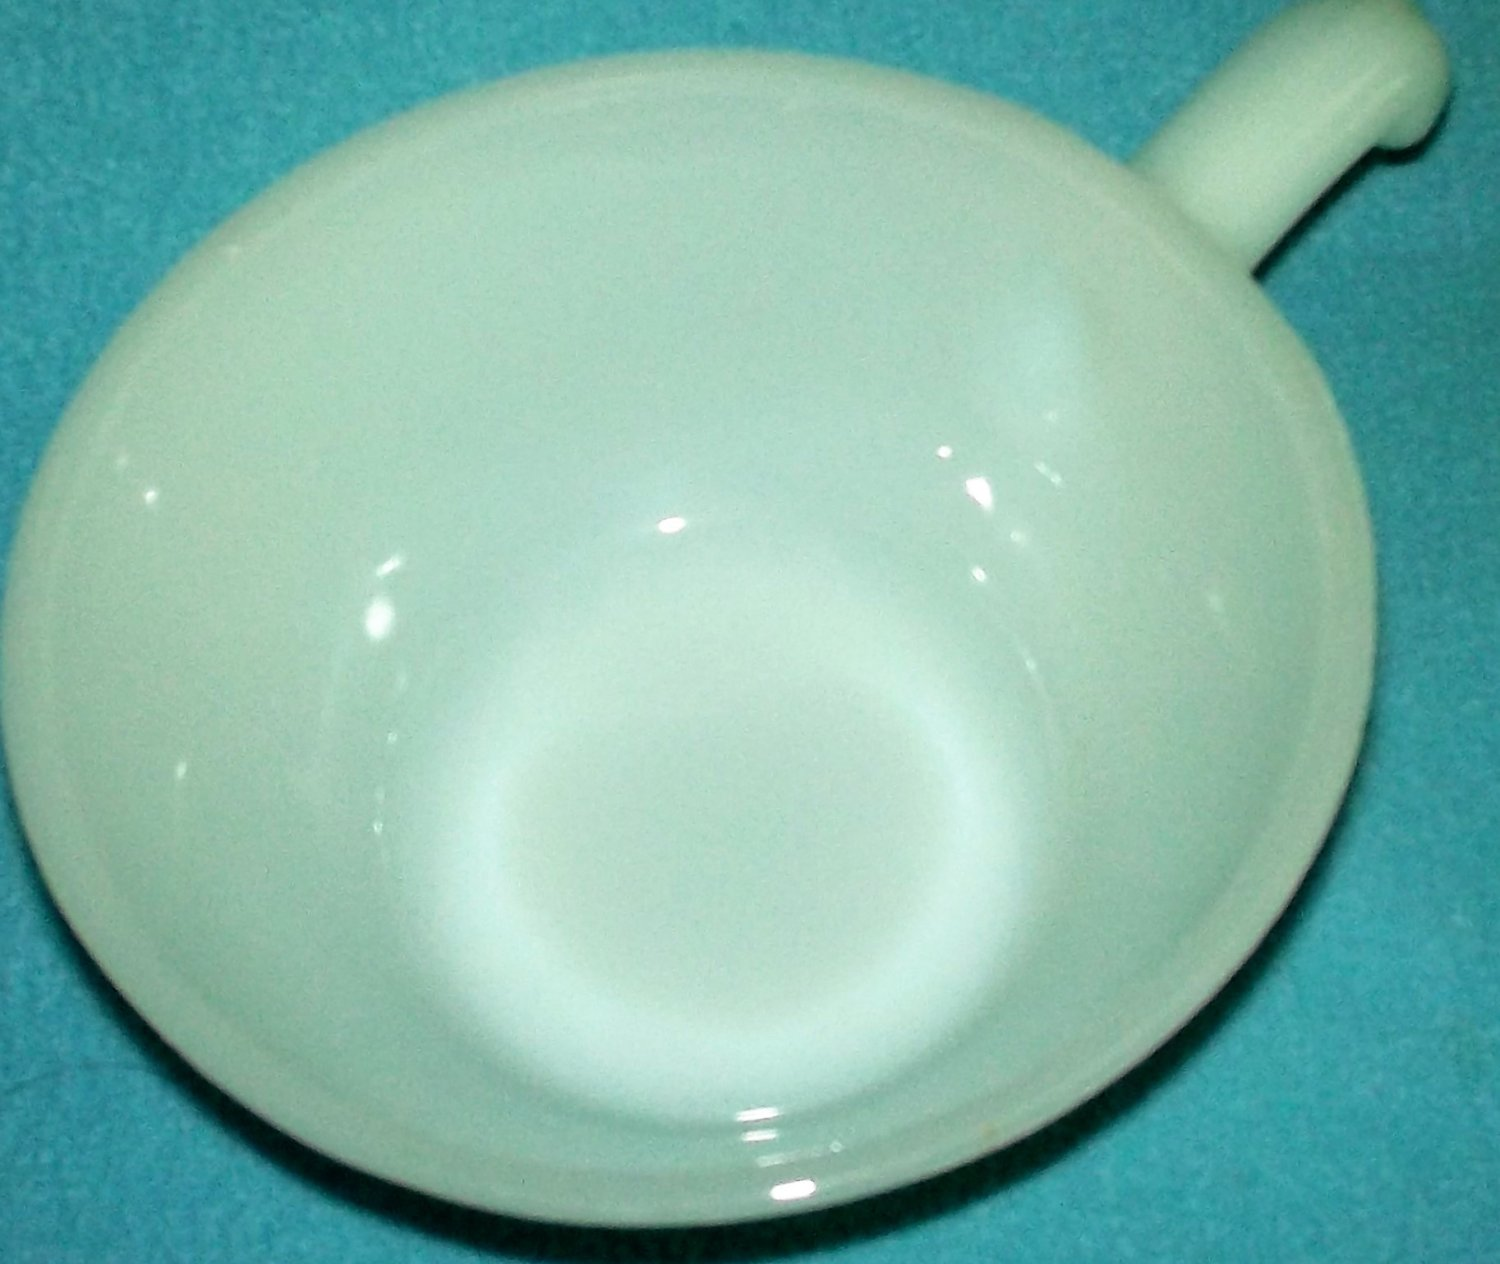 FIRE KING ANCHOR HOCKING White MILK GLASS Chili Soup Bowl GLASS HANDLE Vintage